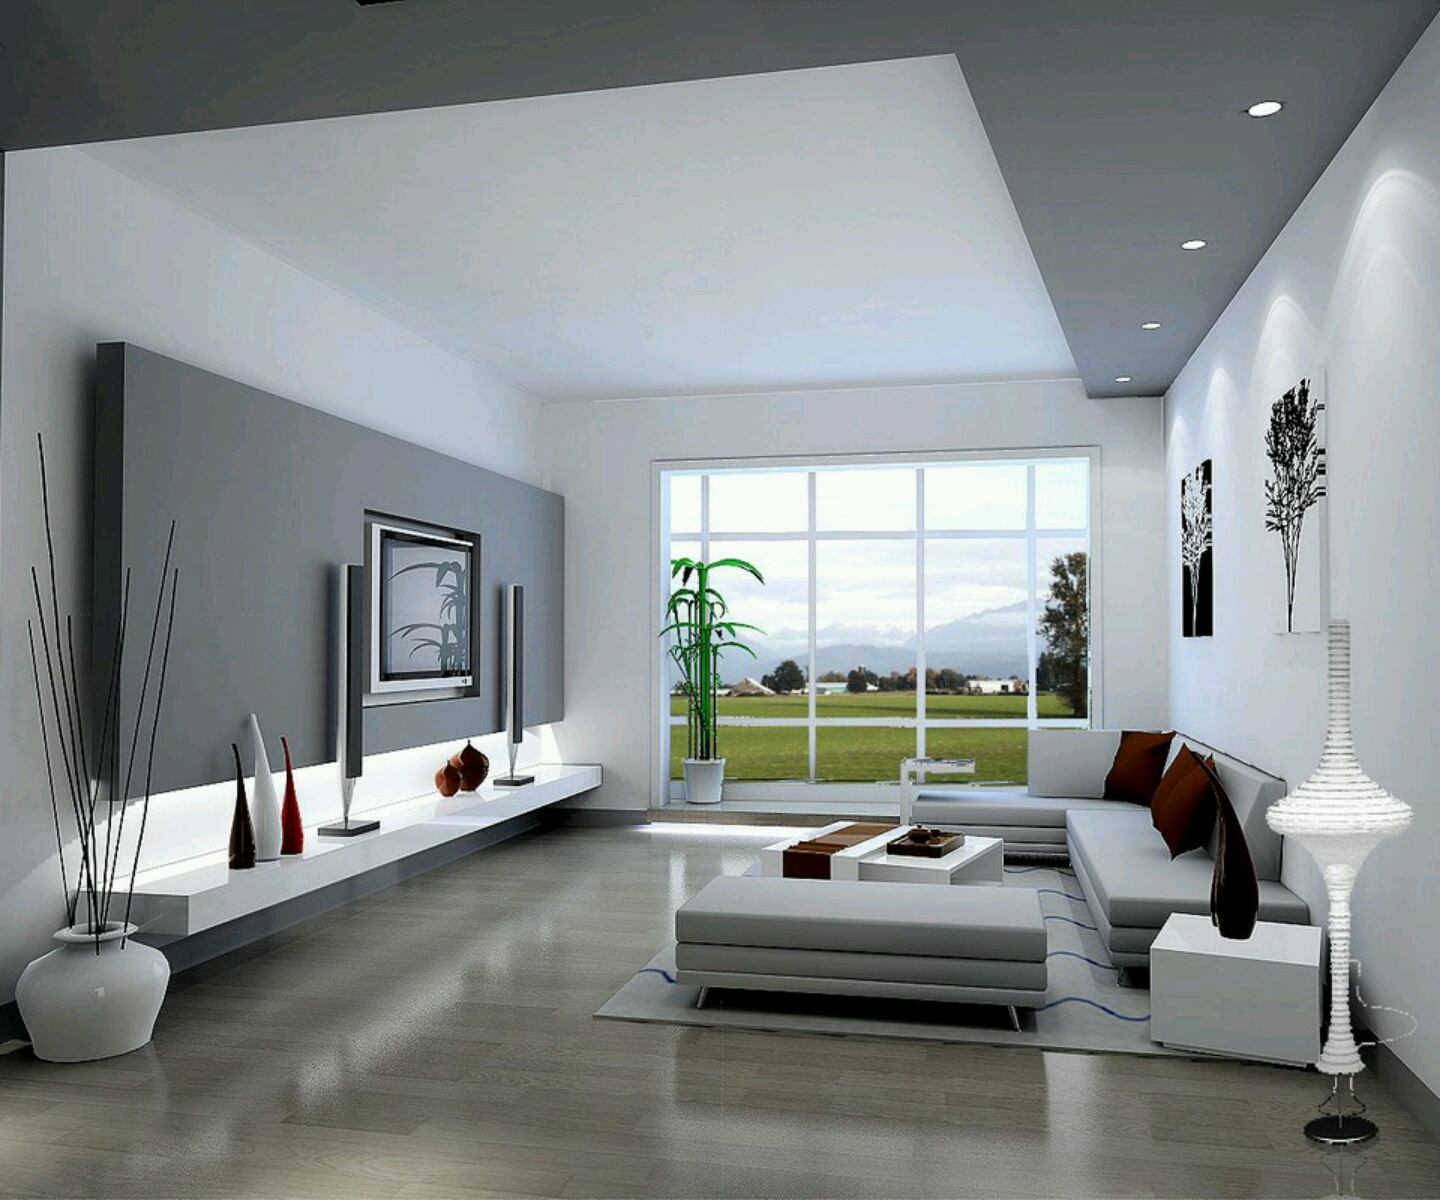 New Home Designs Latest Ultra Modern Living Rooms: New Home Designs Latest.: Modern Living Rooms Interior